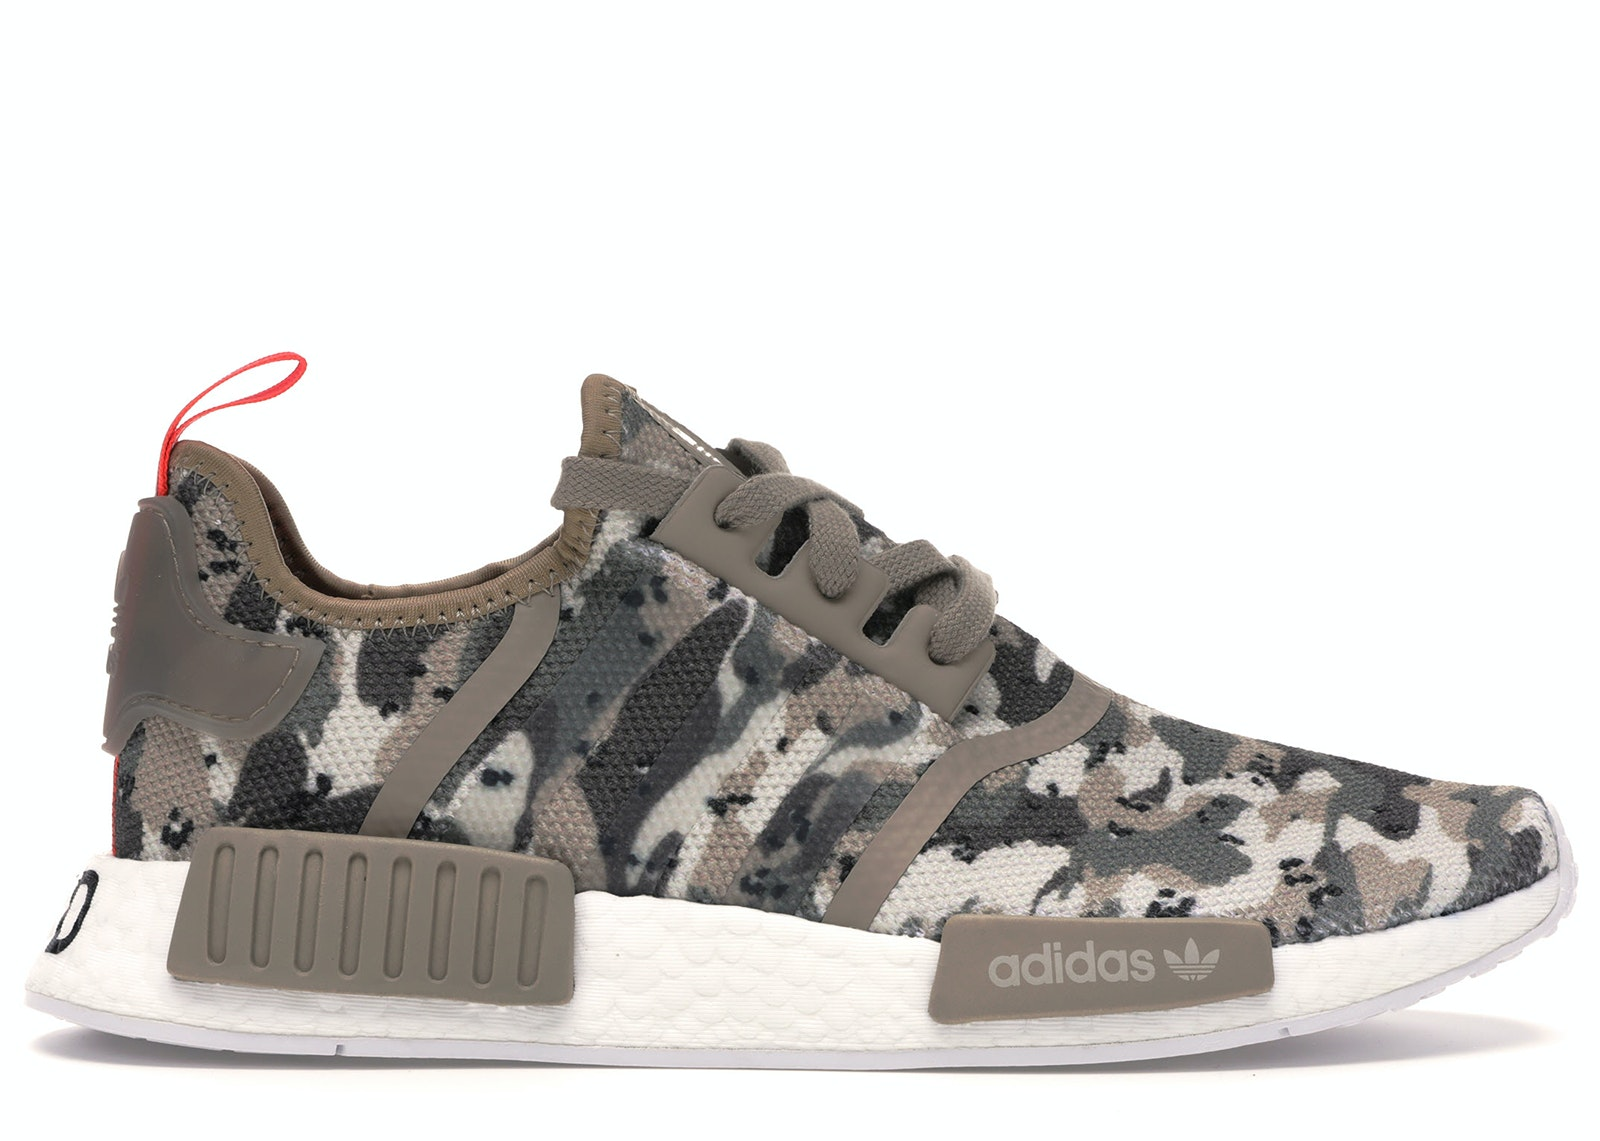 adidas NMD R1 Camo Clear Brown